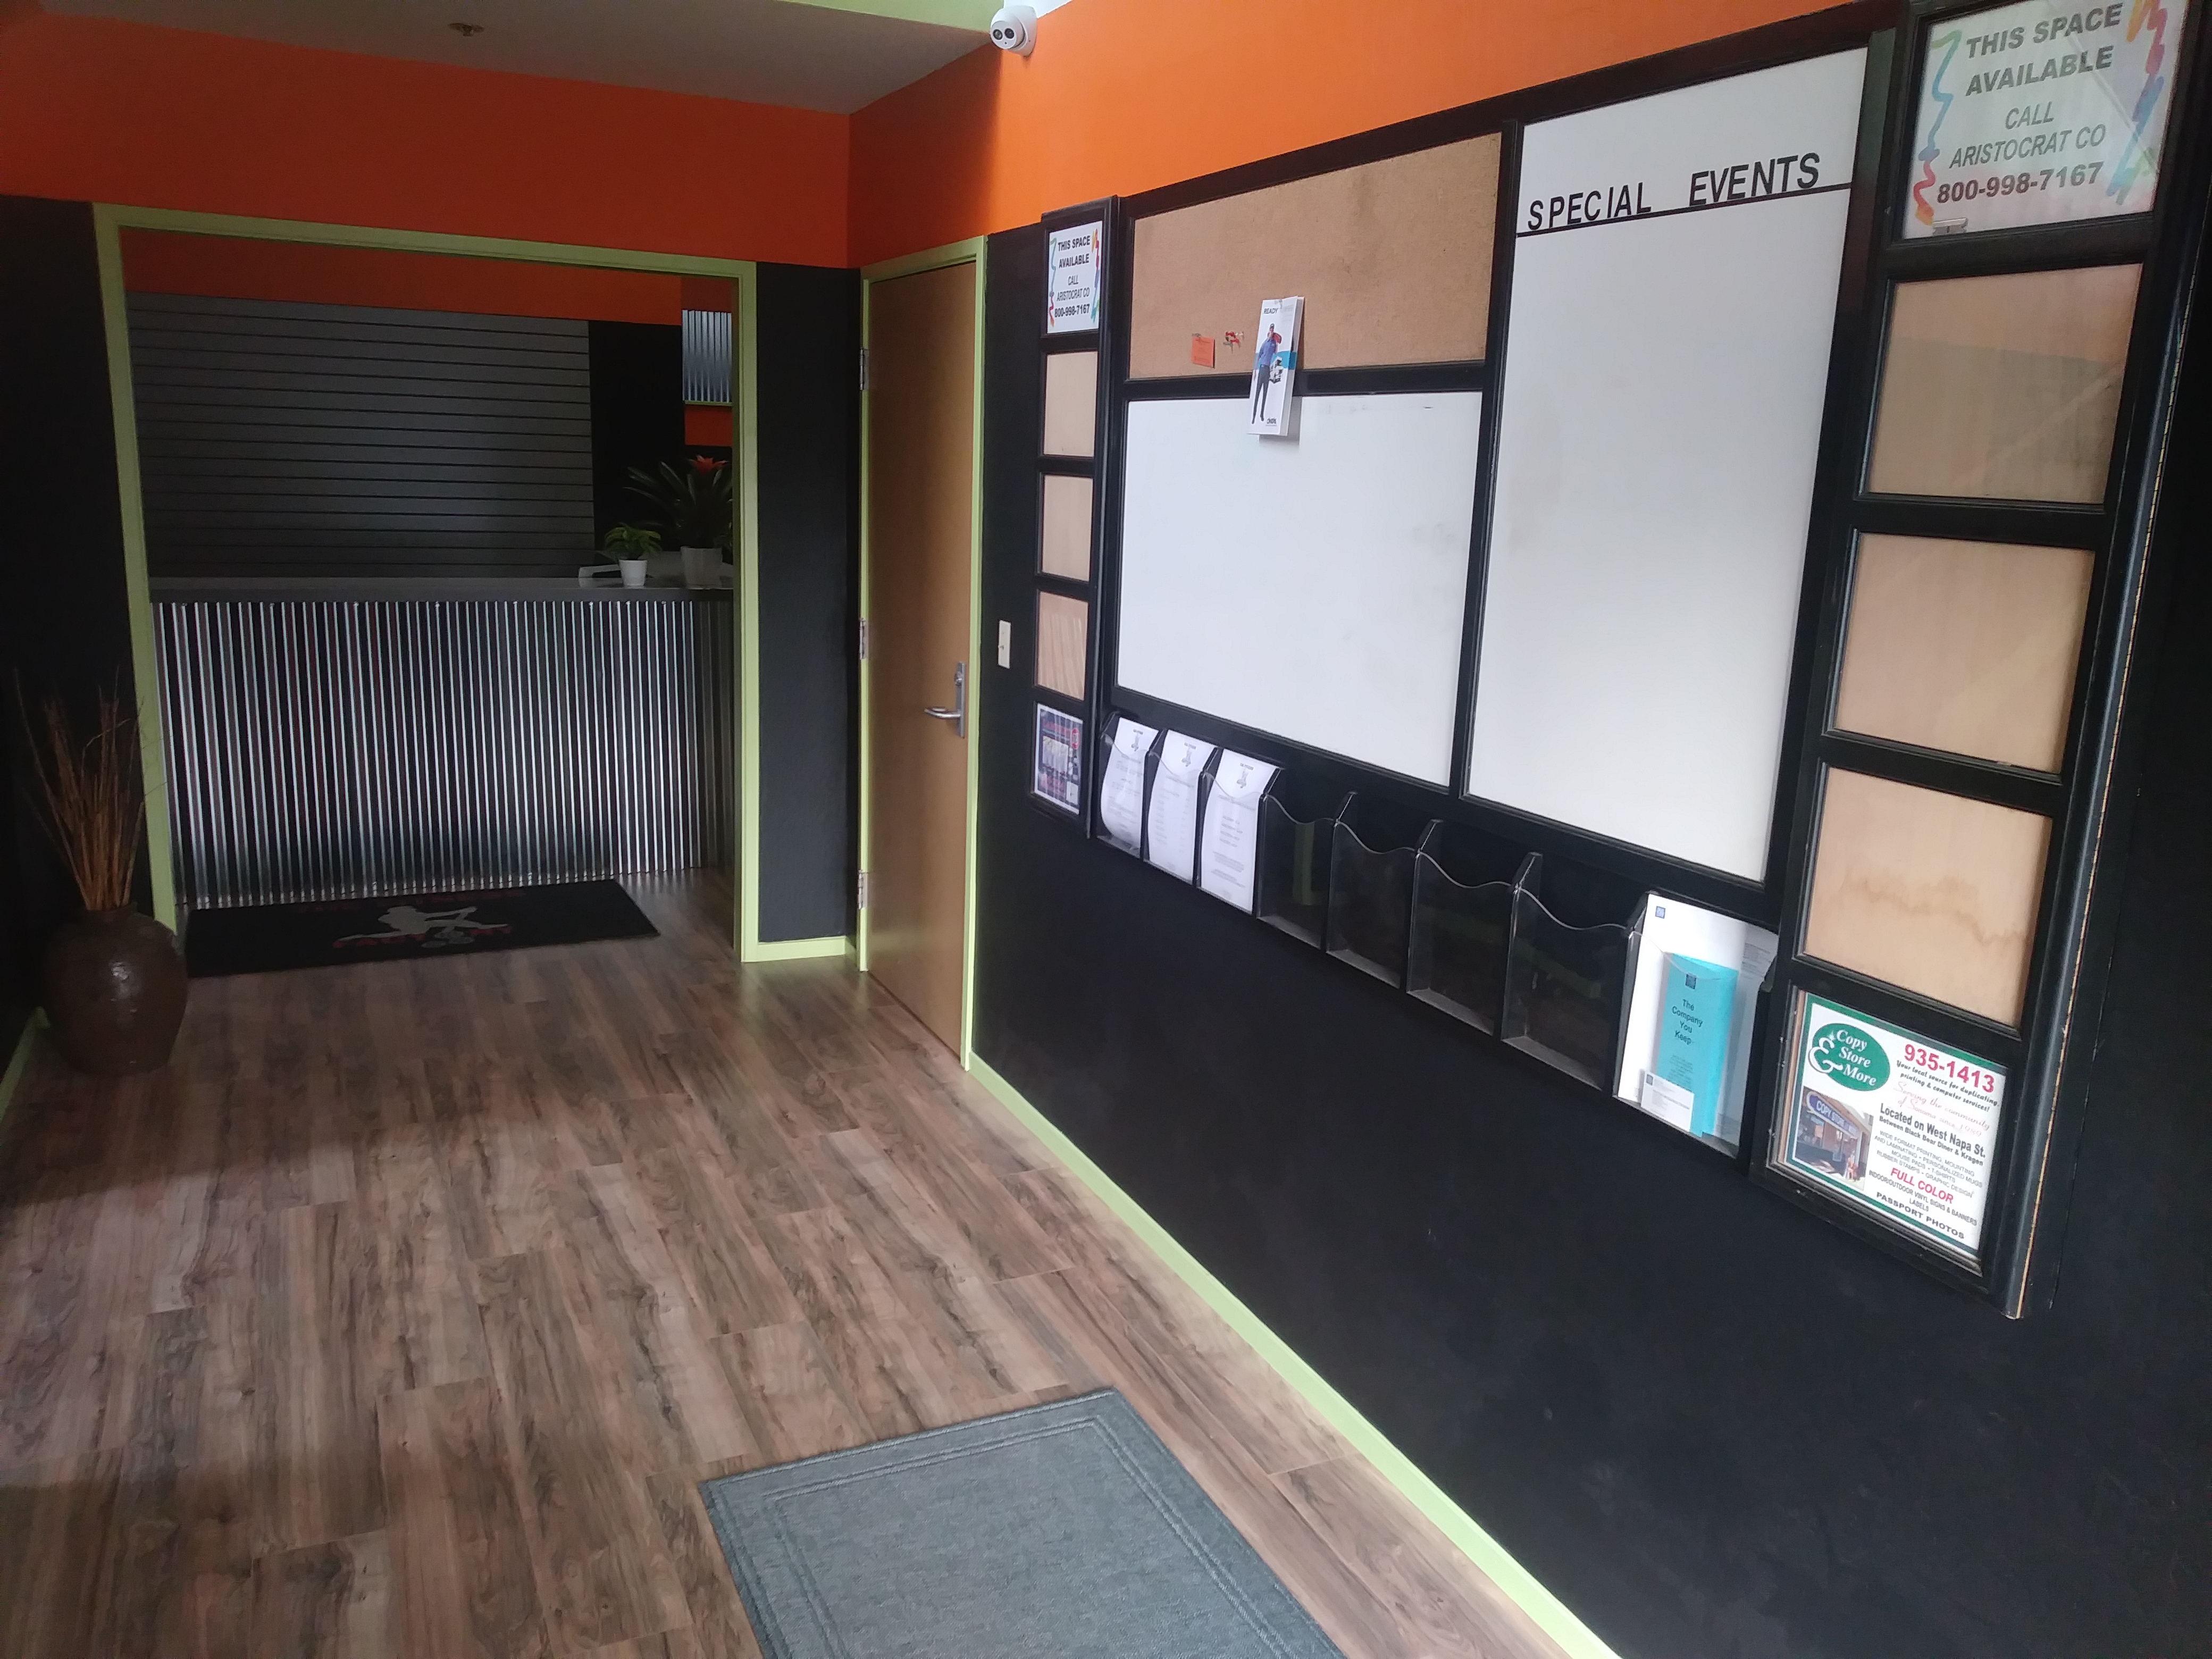 Looking for an honest gym at an affordable price? The Fitness Factory is for you! Our prices are competitive and we have everything you need to get the body you're looking for. Call The Fitness Factory or stop by our Sonoma location today!